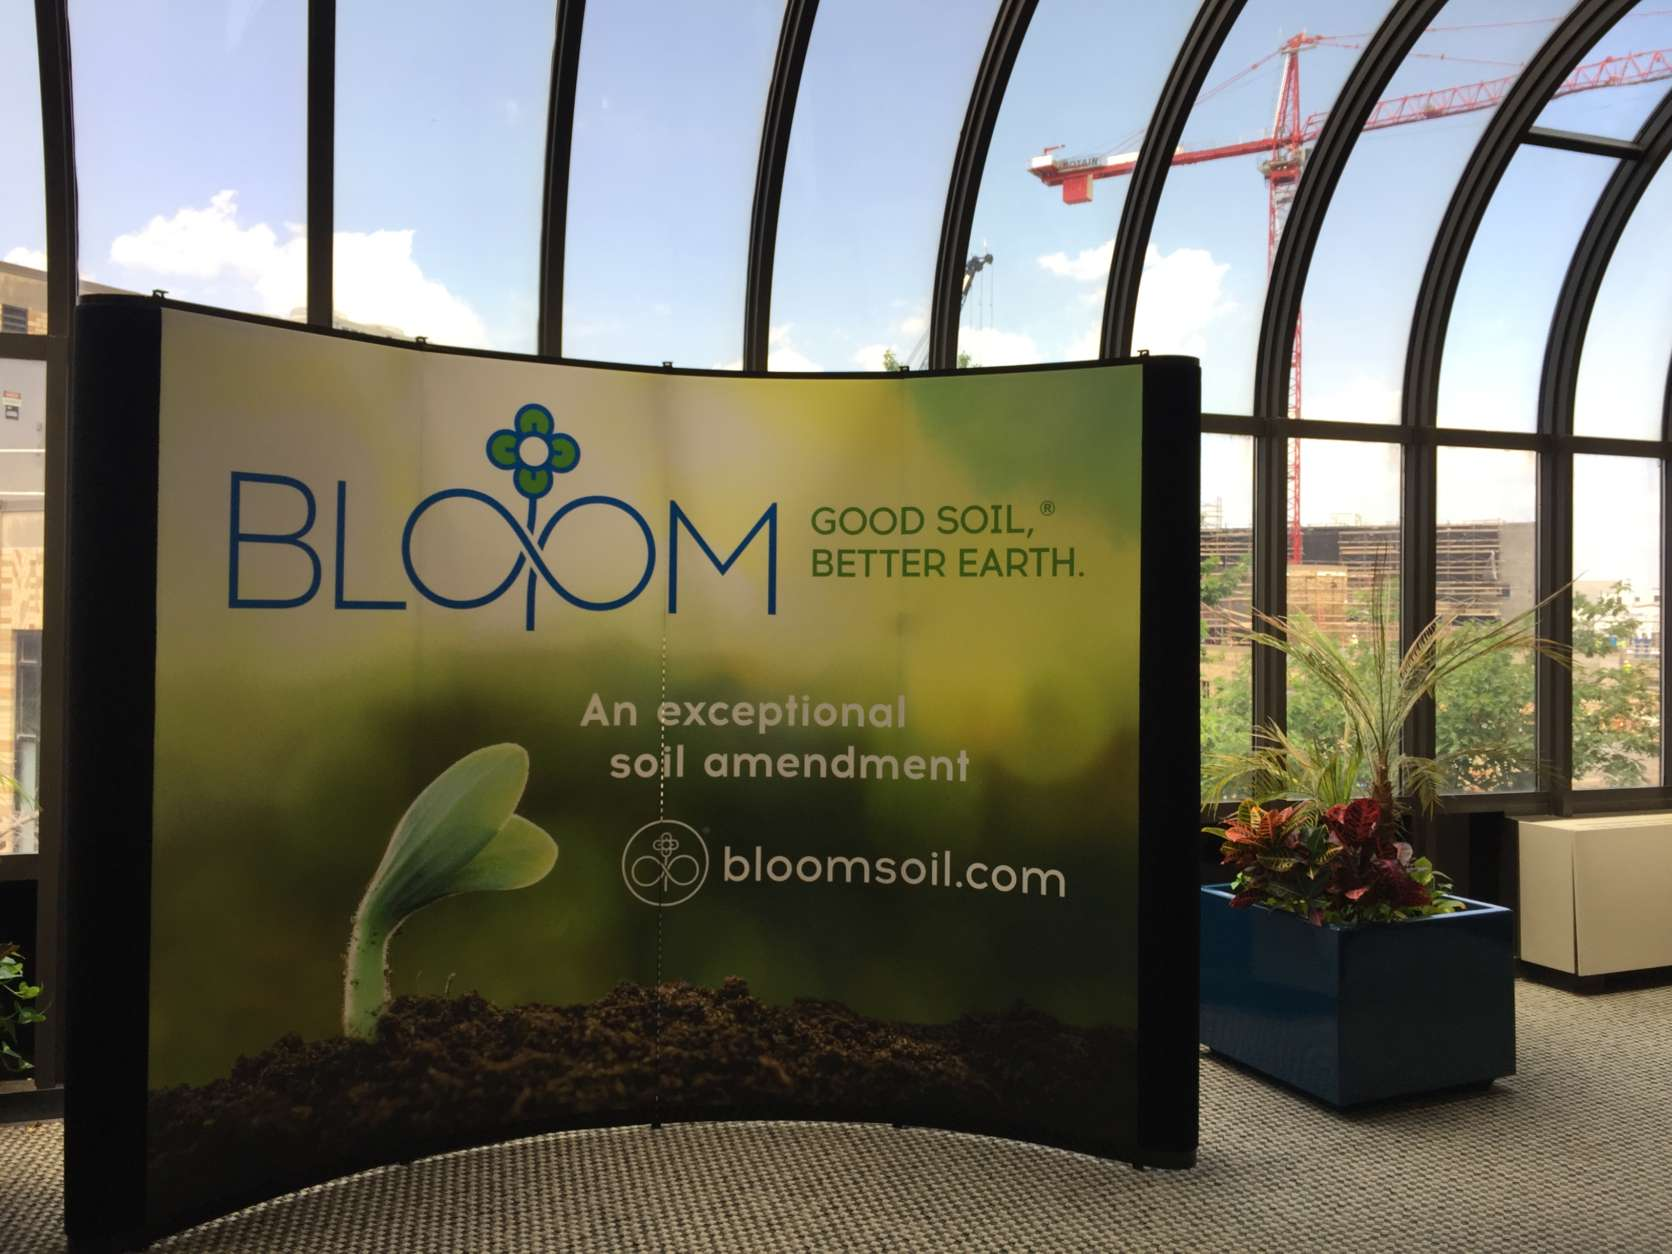 Now available for use in D.C. and Maryland, Bloom soon will be offered in Pennsylvania and Virginia as well. (WTOP/Kristi King)